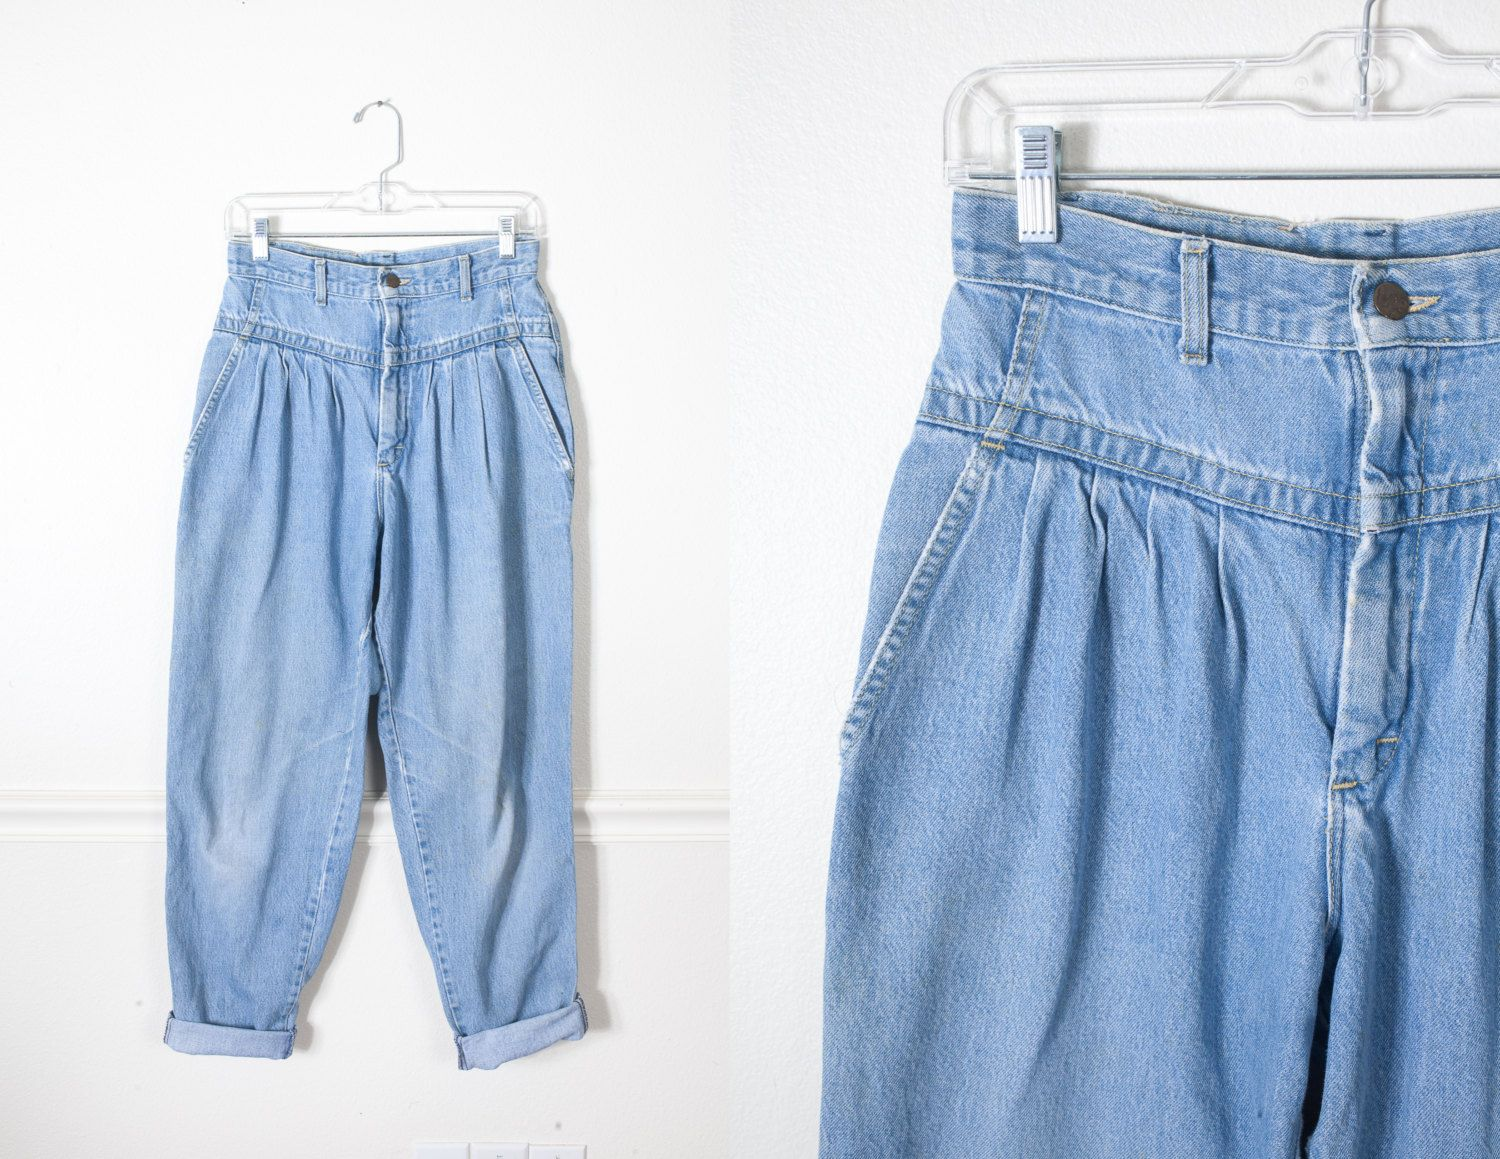 64b9298392 DETAILS Vintage ultra high waisted 80s/90s Lee jeans. Pleated yoke front.  Soft, light wash denim with some moderate fraying/distressing around the  edges.